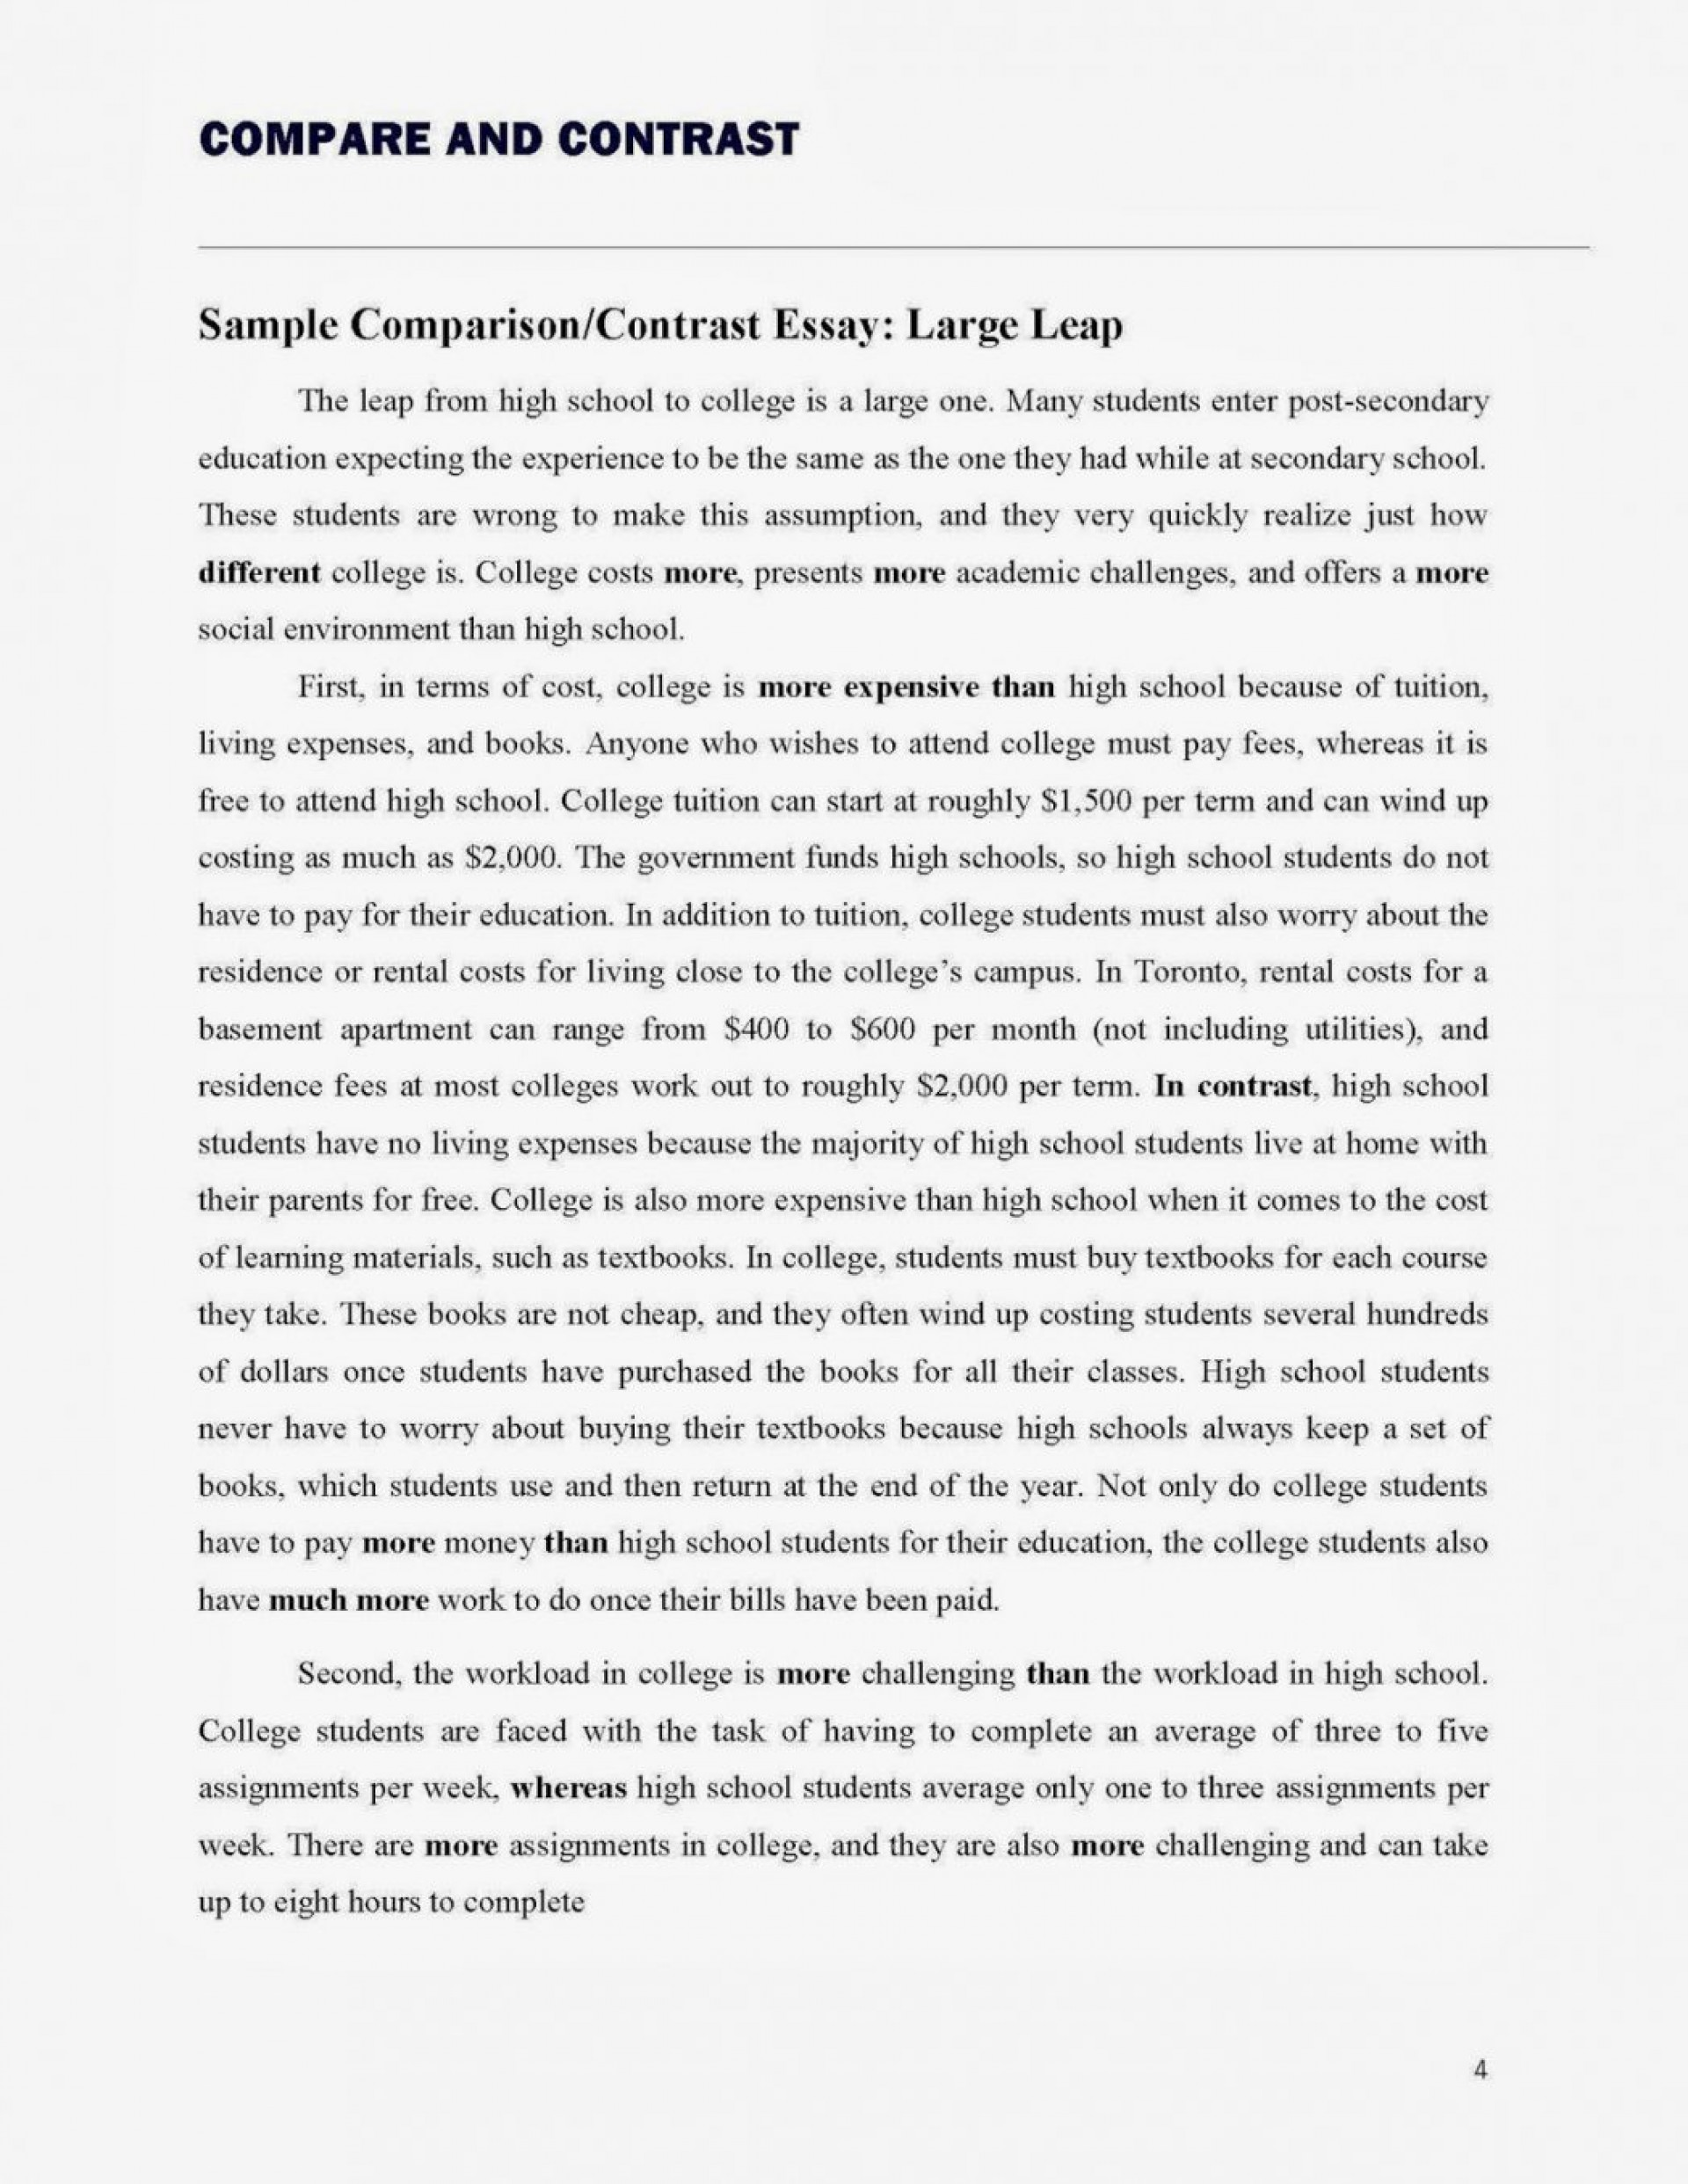 016 Essay Example How To Write Compare And Contrast On High School College Level Topics Structure Format Transitions Prompts Outline Introduction Template Examples Striking Block Method Conclusion 1920